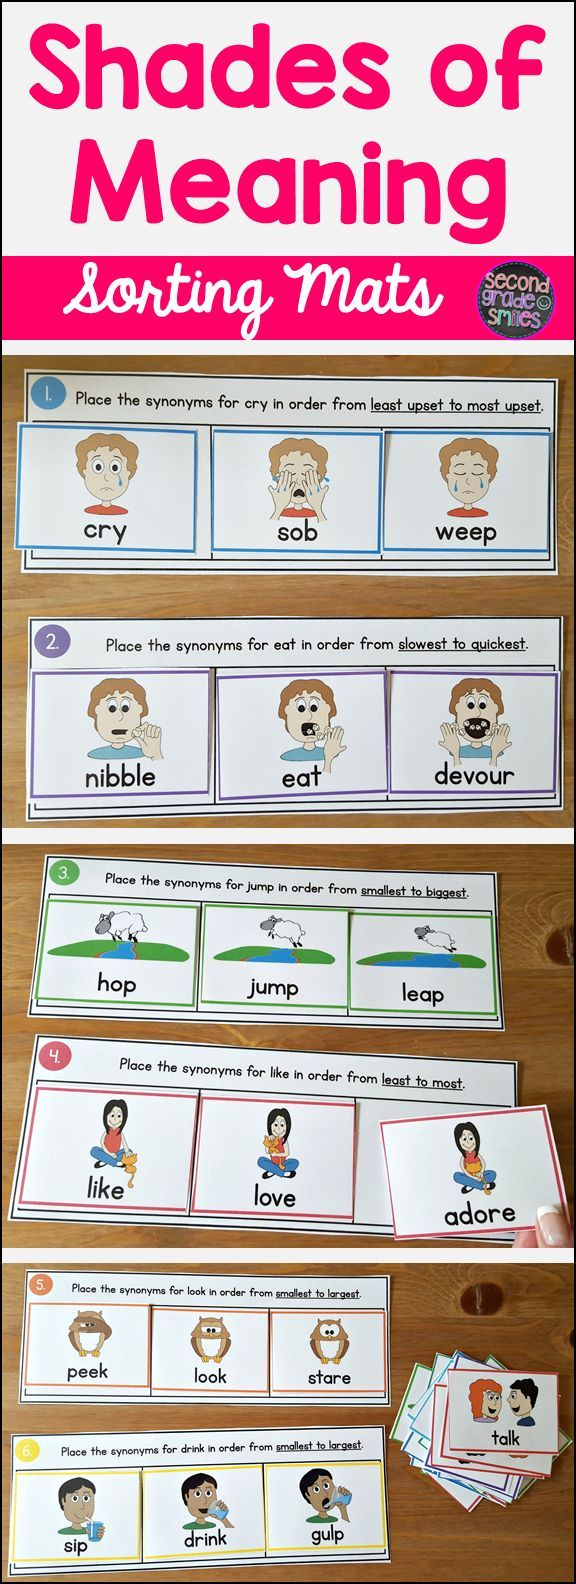 Need new synonym activities? Grab these shades of meaning mats and illustrated synonym word cards. These activities made a great literacy center for all my 2nd graders and were especially helpful for my ELLs!